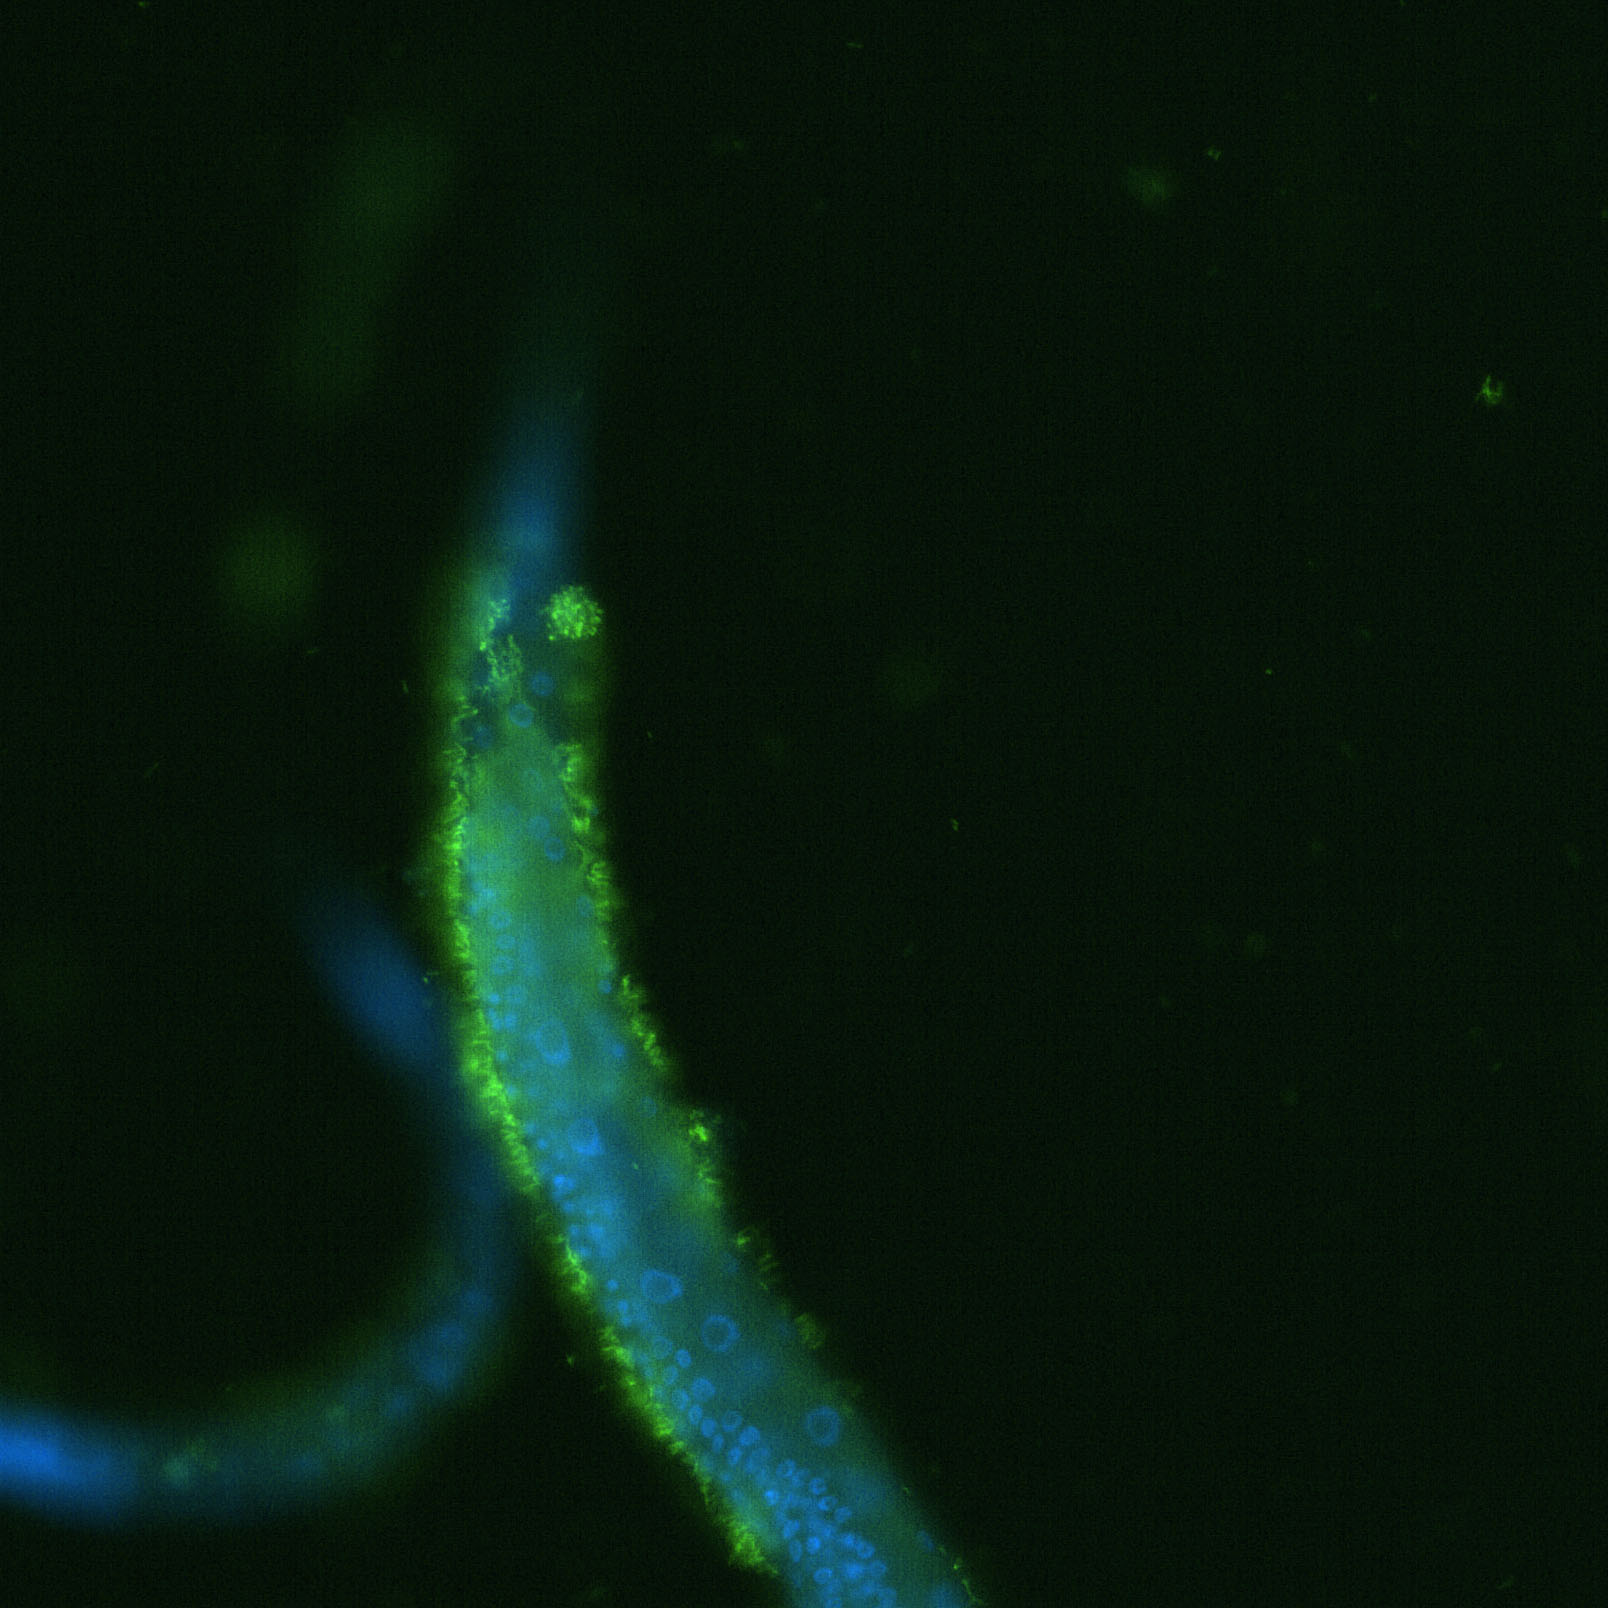 The tail end of a worm coated with bacteria (green).